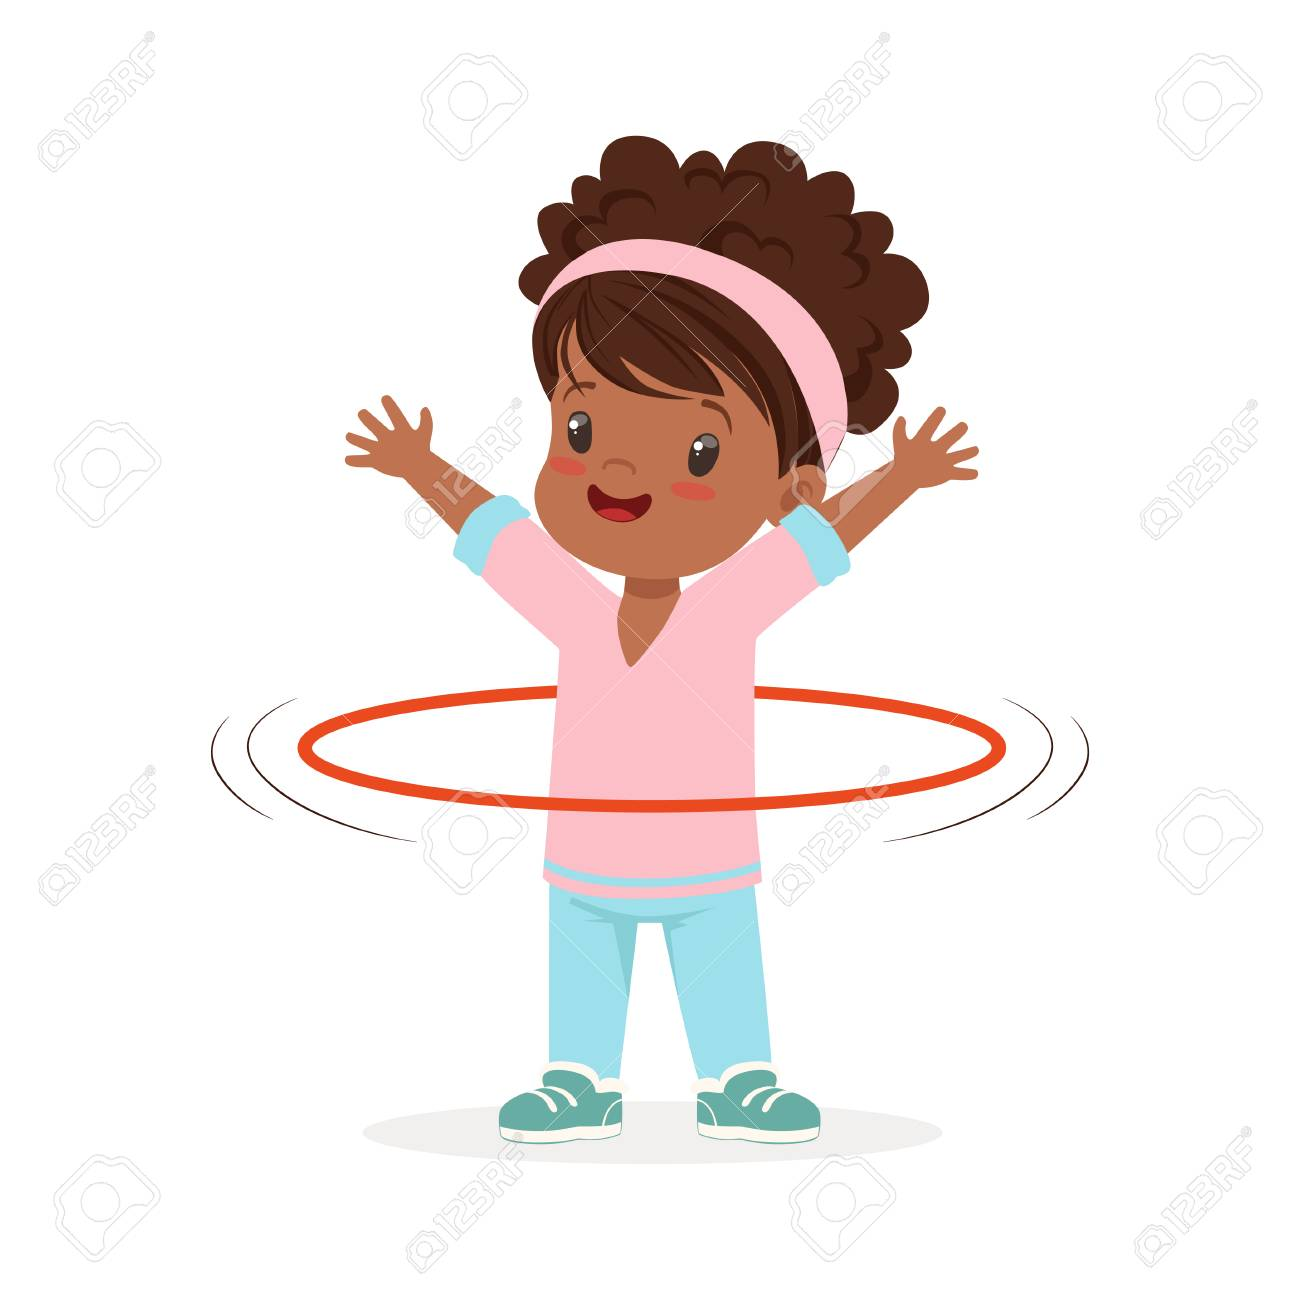 girl spining a hula hoop around the waist kid doing sports colorful